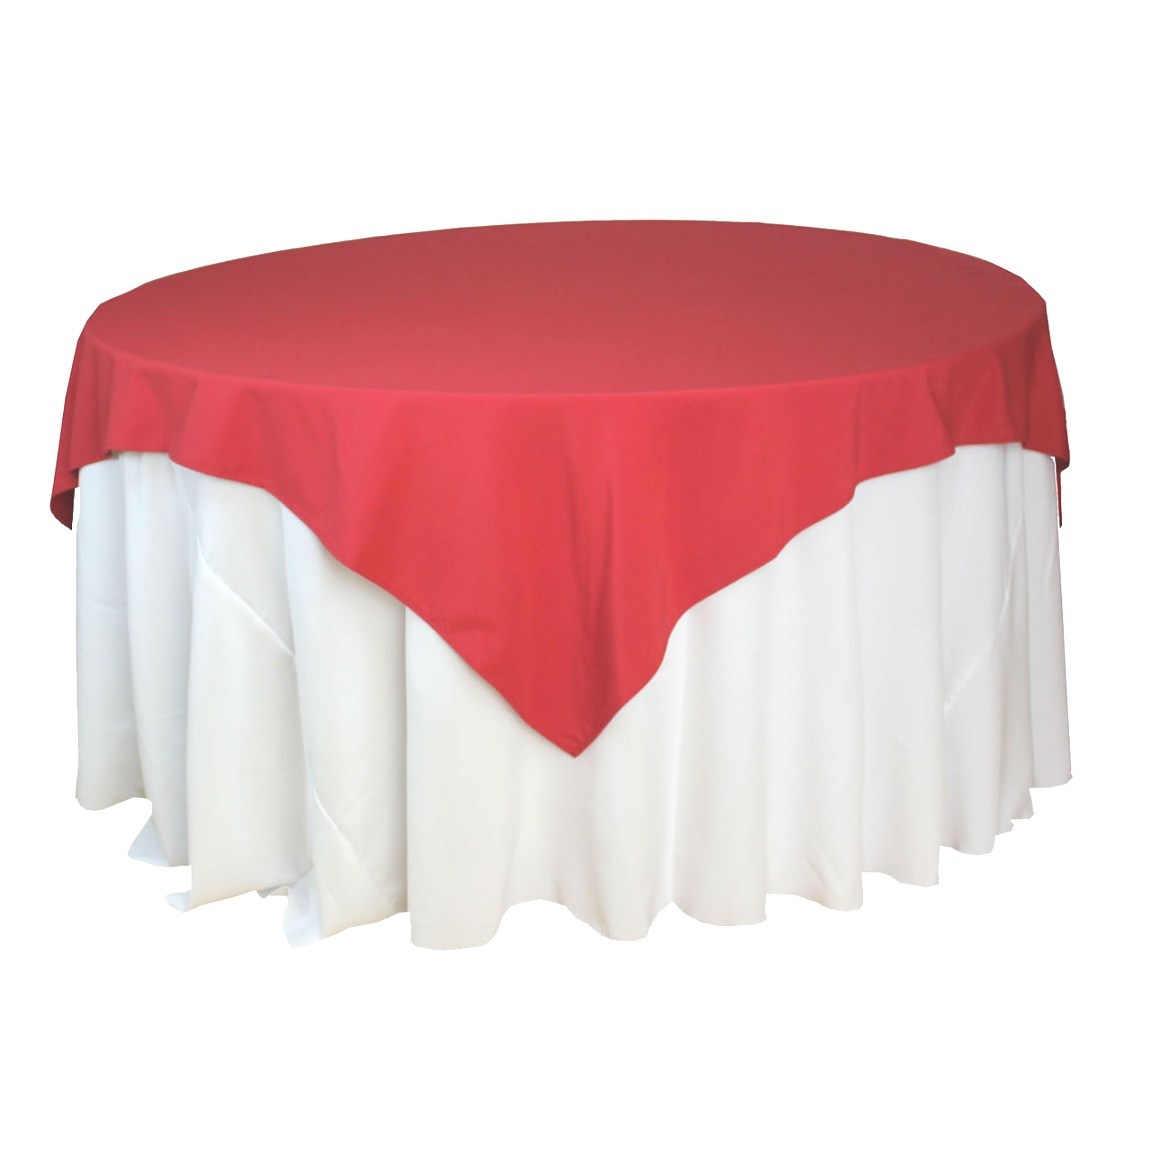 round table linens | Home Decor: Alluring Round Table Cloths | round table linens